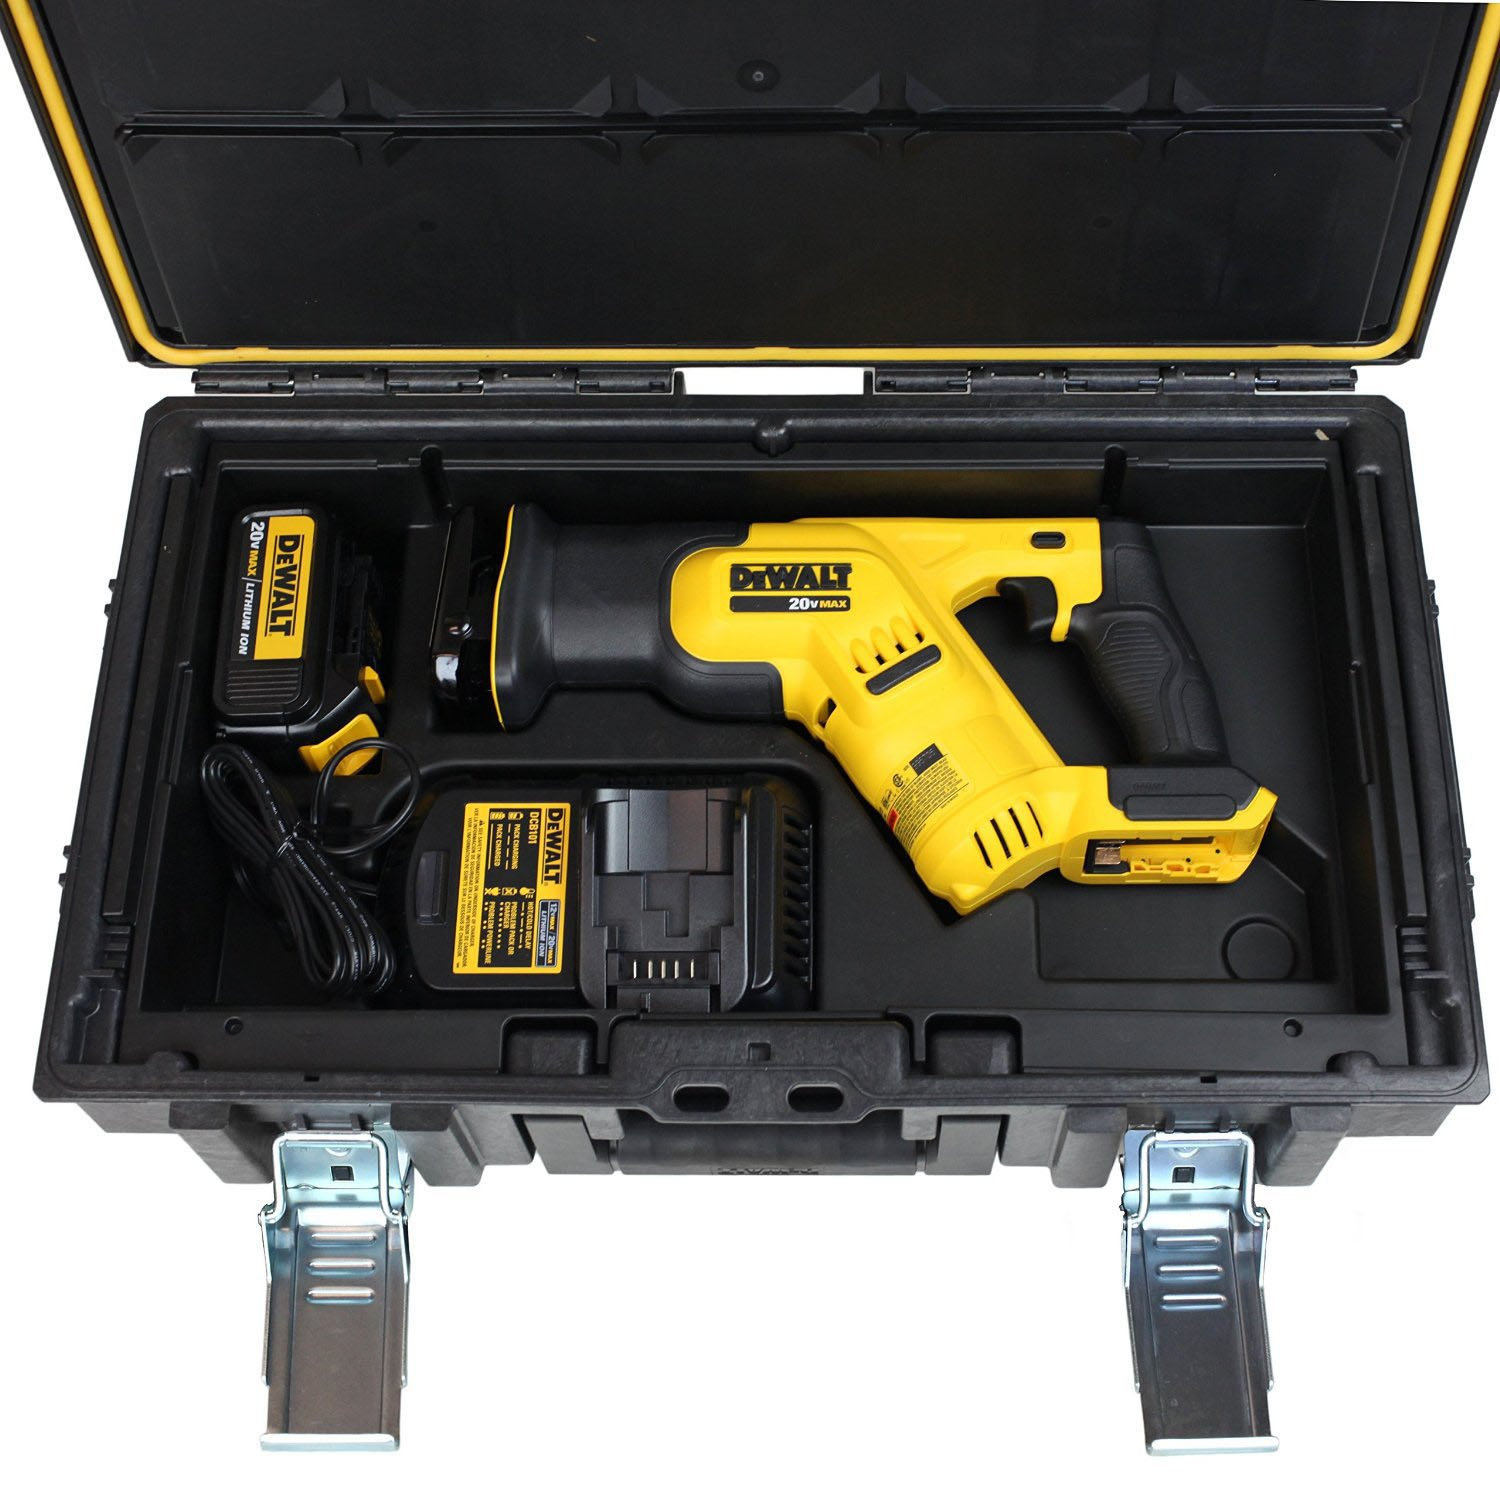 Dewalt dcsts387l1r 20v max cordless lithium ion compact dewalt dcsts387l1r 20v max cordless lithium ion compact reciprocating saw amazon greentooth Choice Image